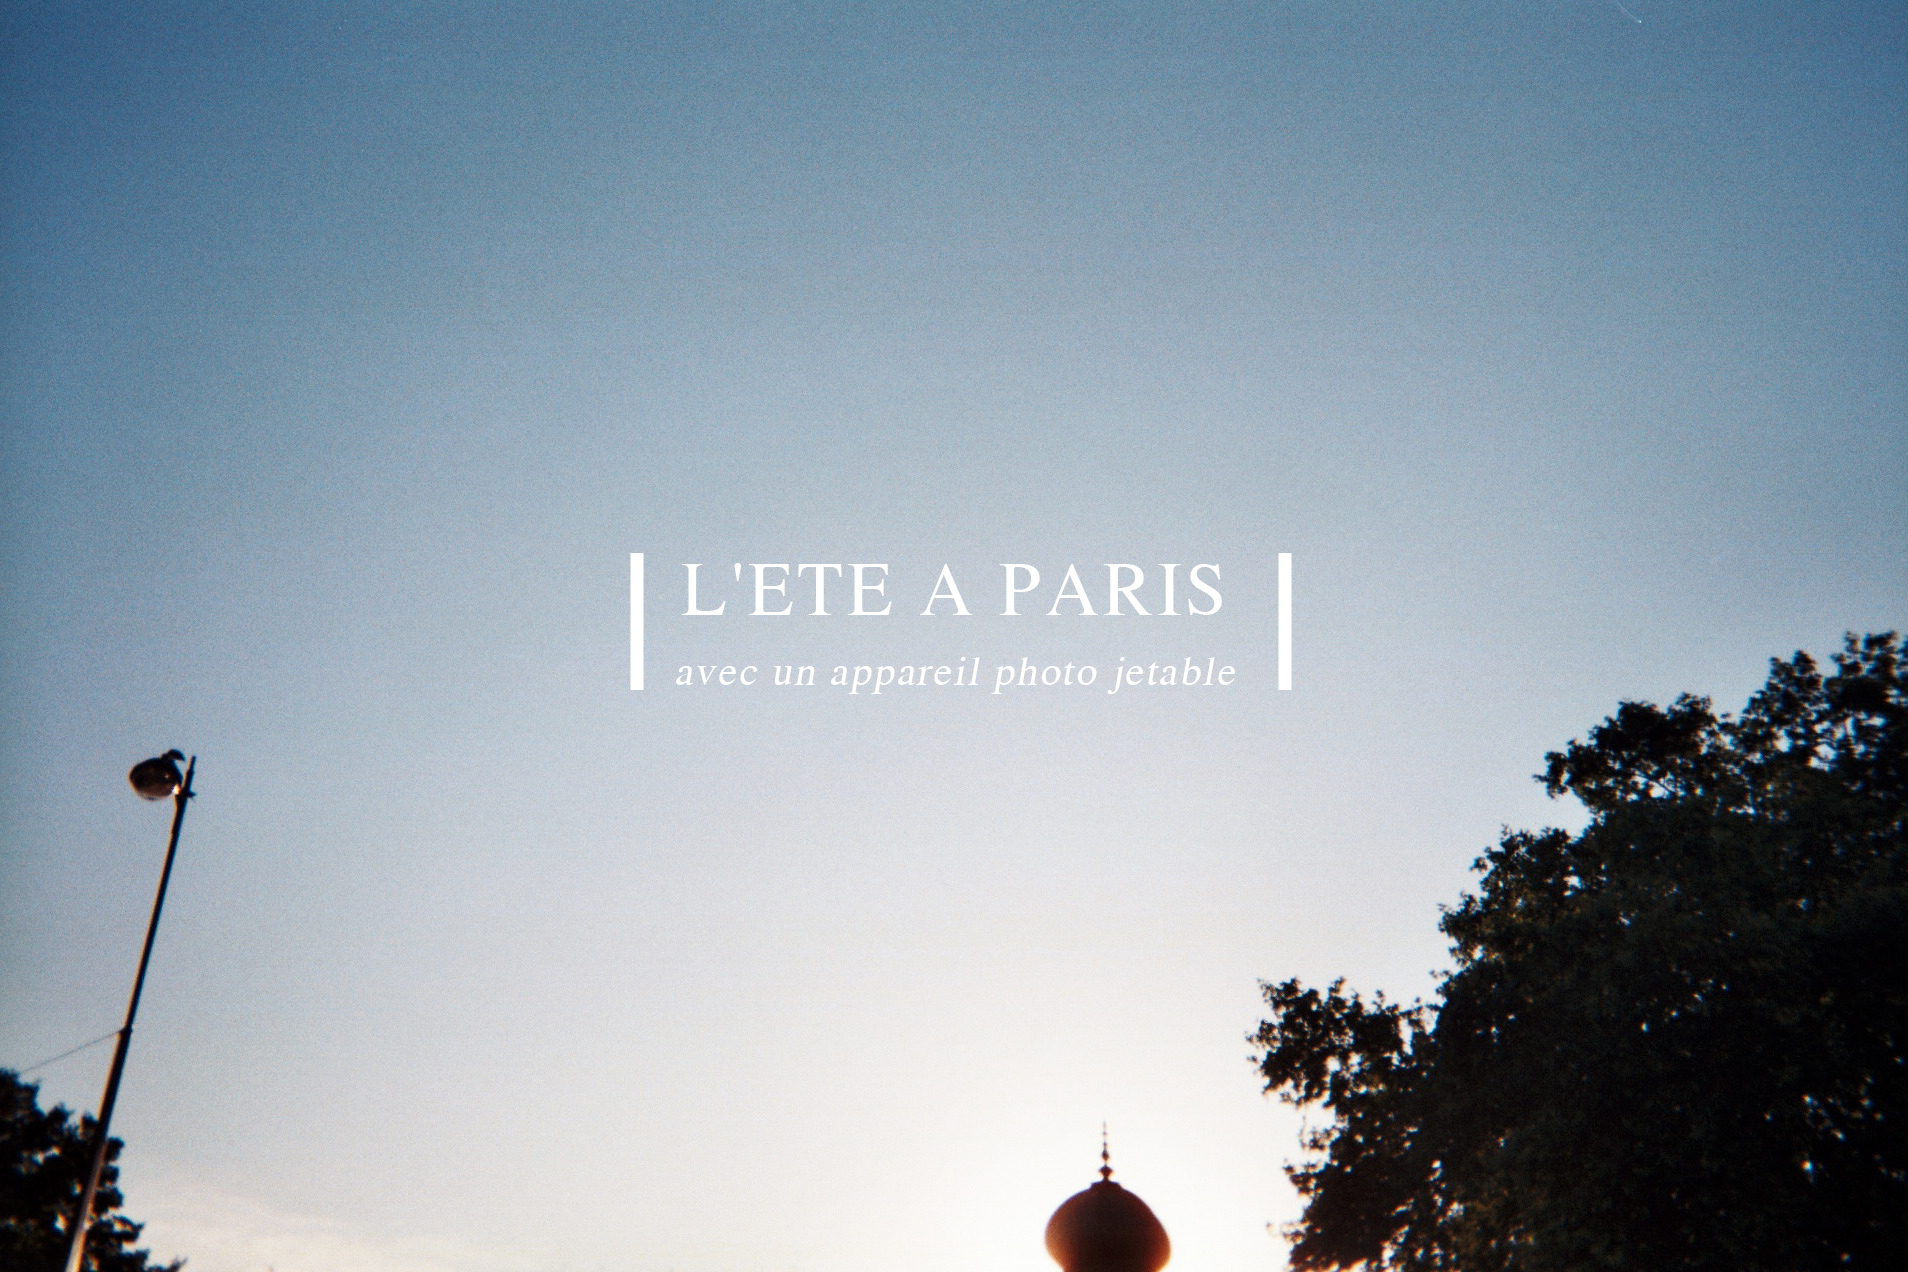 ete-summer-paris-appareil-photo-jetable-by-le-polyedre visuel)